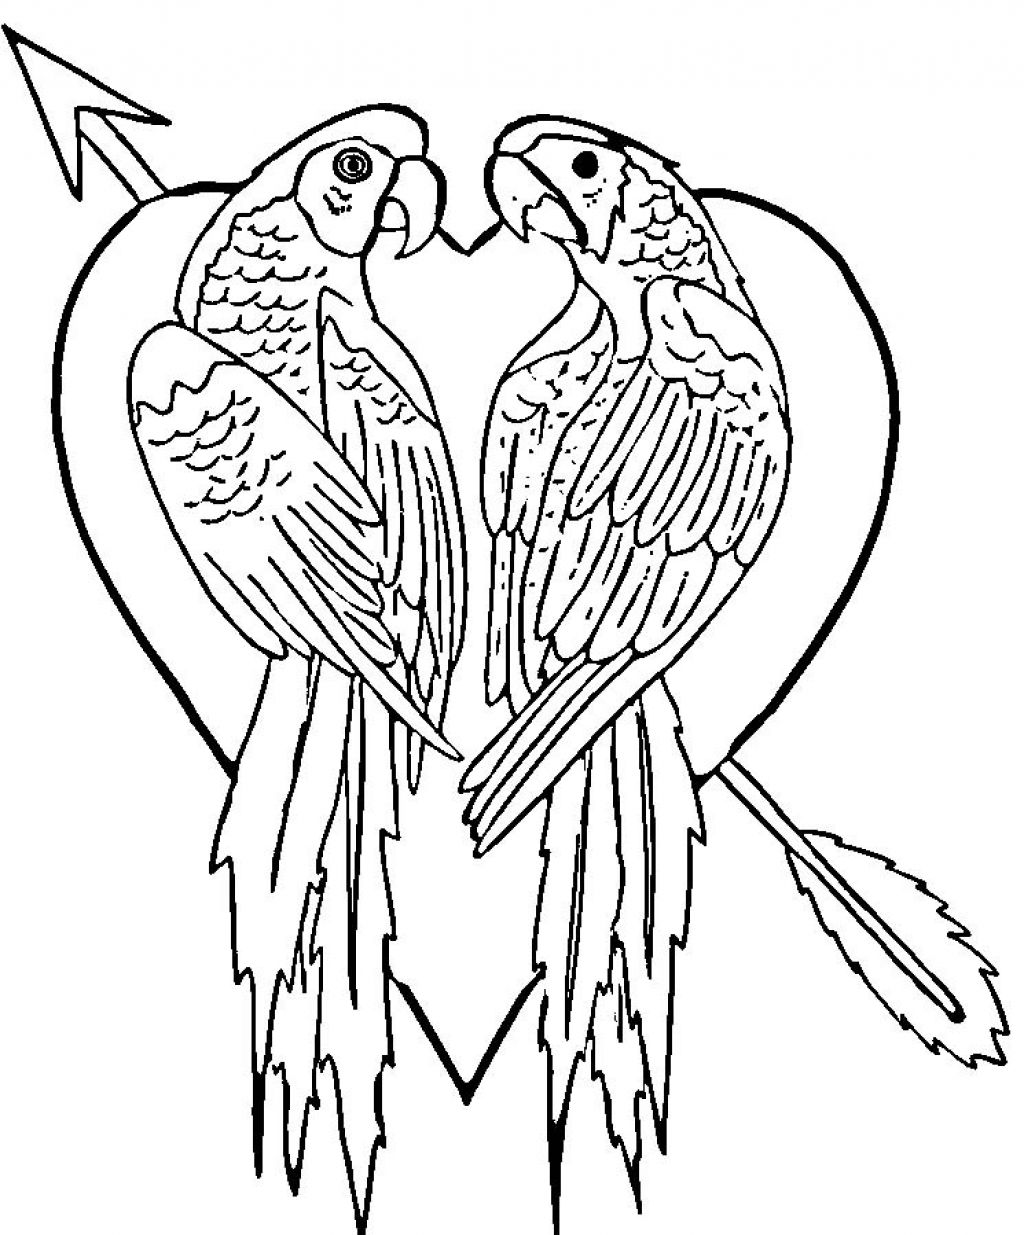 Free Printable Parrot Coloring Pages For Kids Coloring Pages For Free